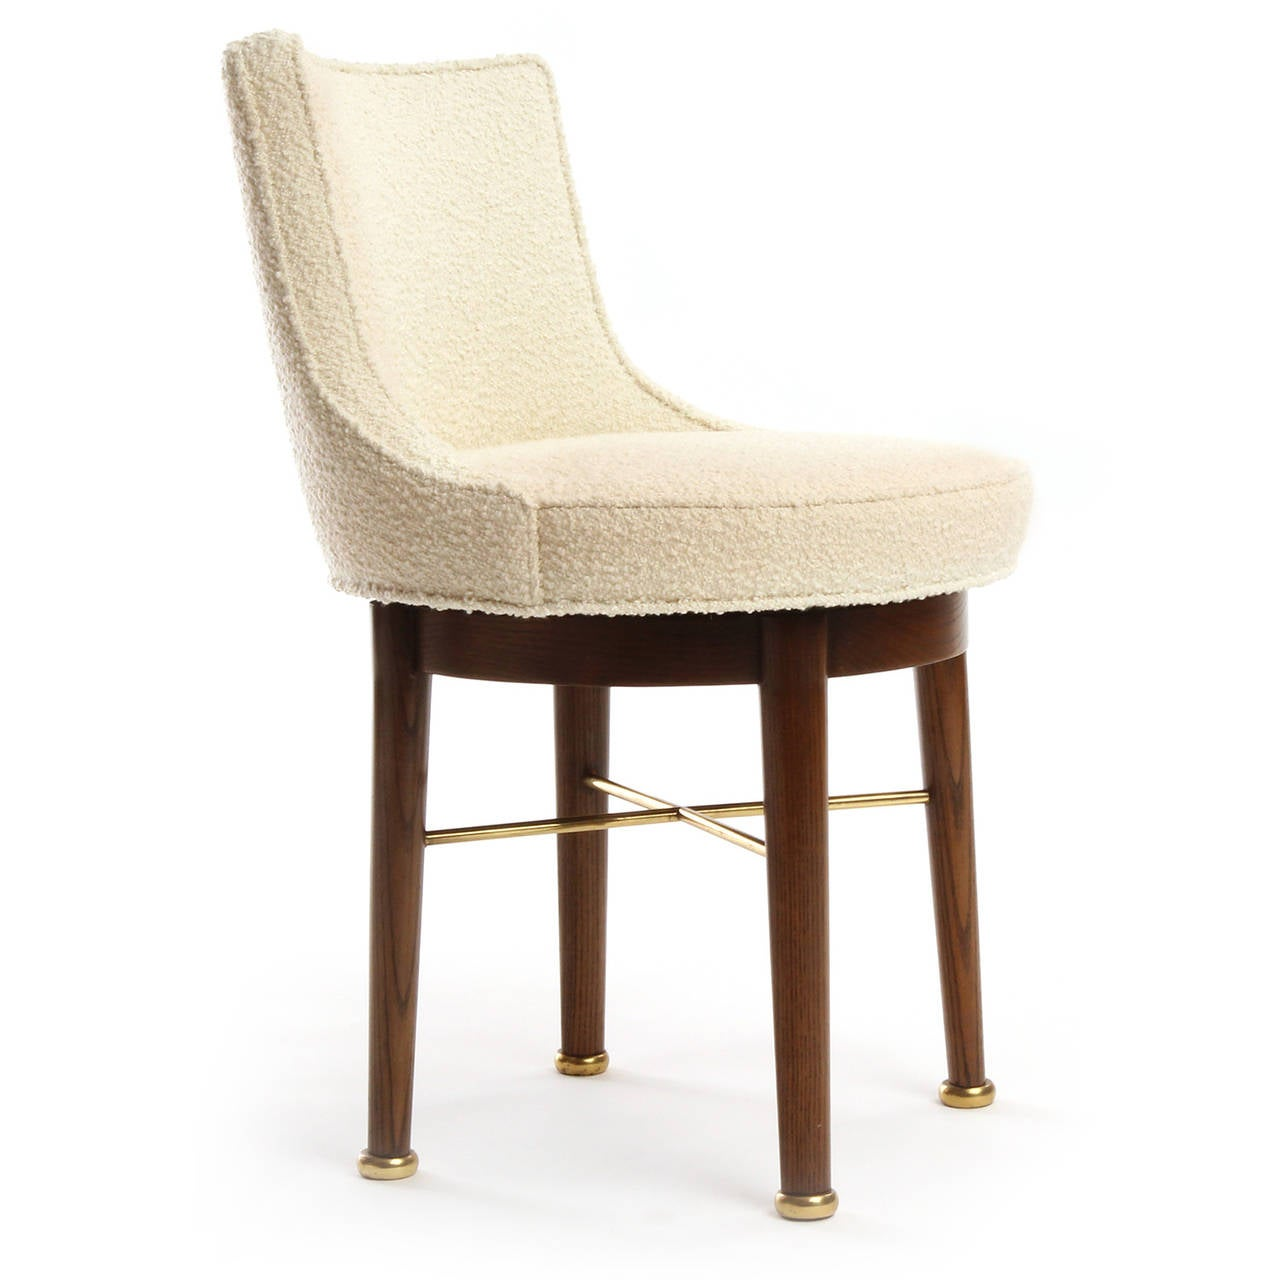 Swiveling vanity chair by edward wormley for sale at 1stdibs - Edward wormley chairs ...